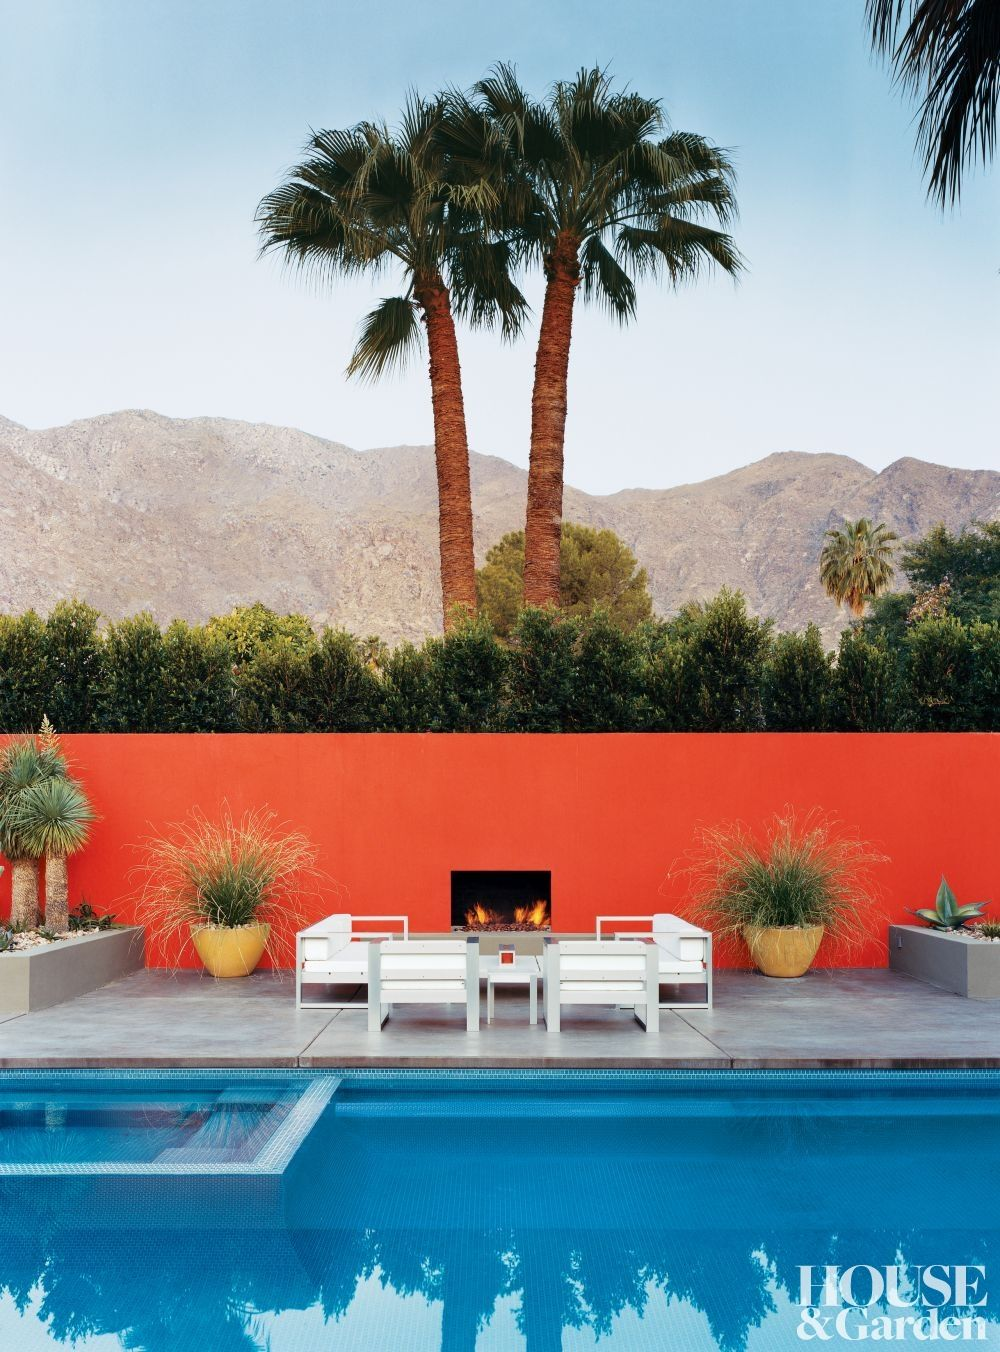 Elegant Tropical Blue And Orange By Marc Ware In Palm Springs, Photo By Raimund Koch